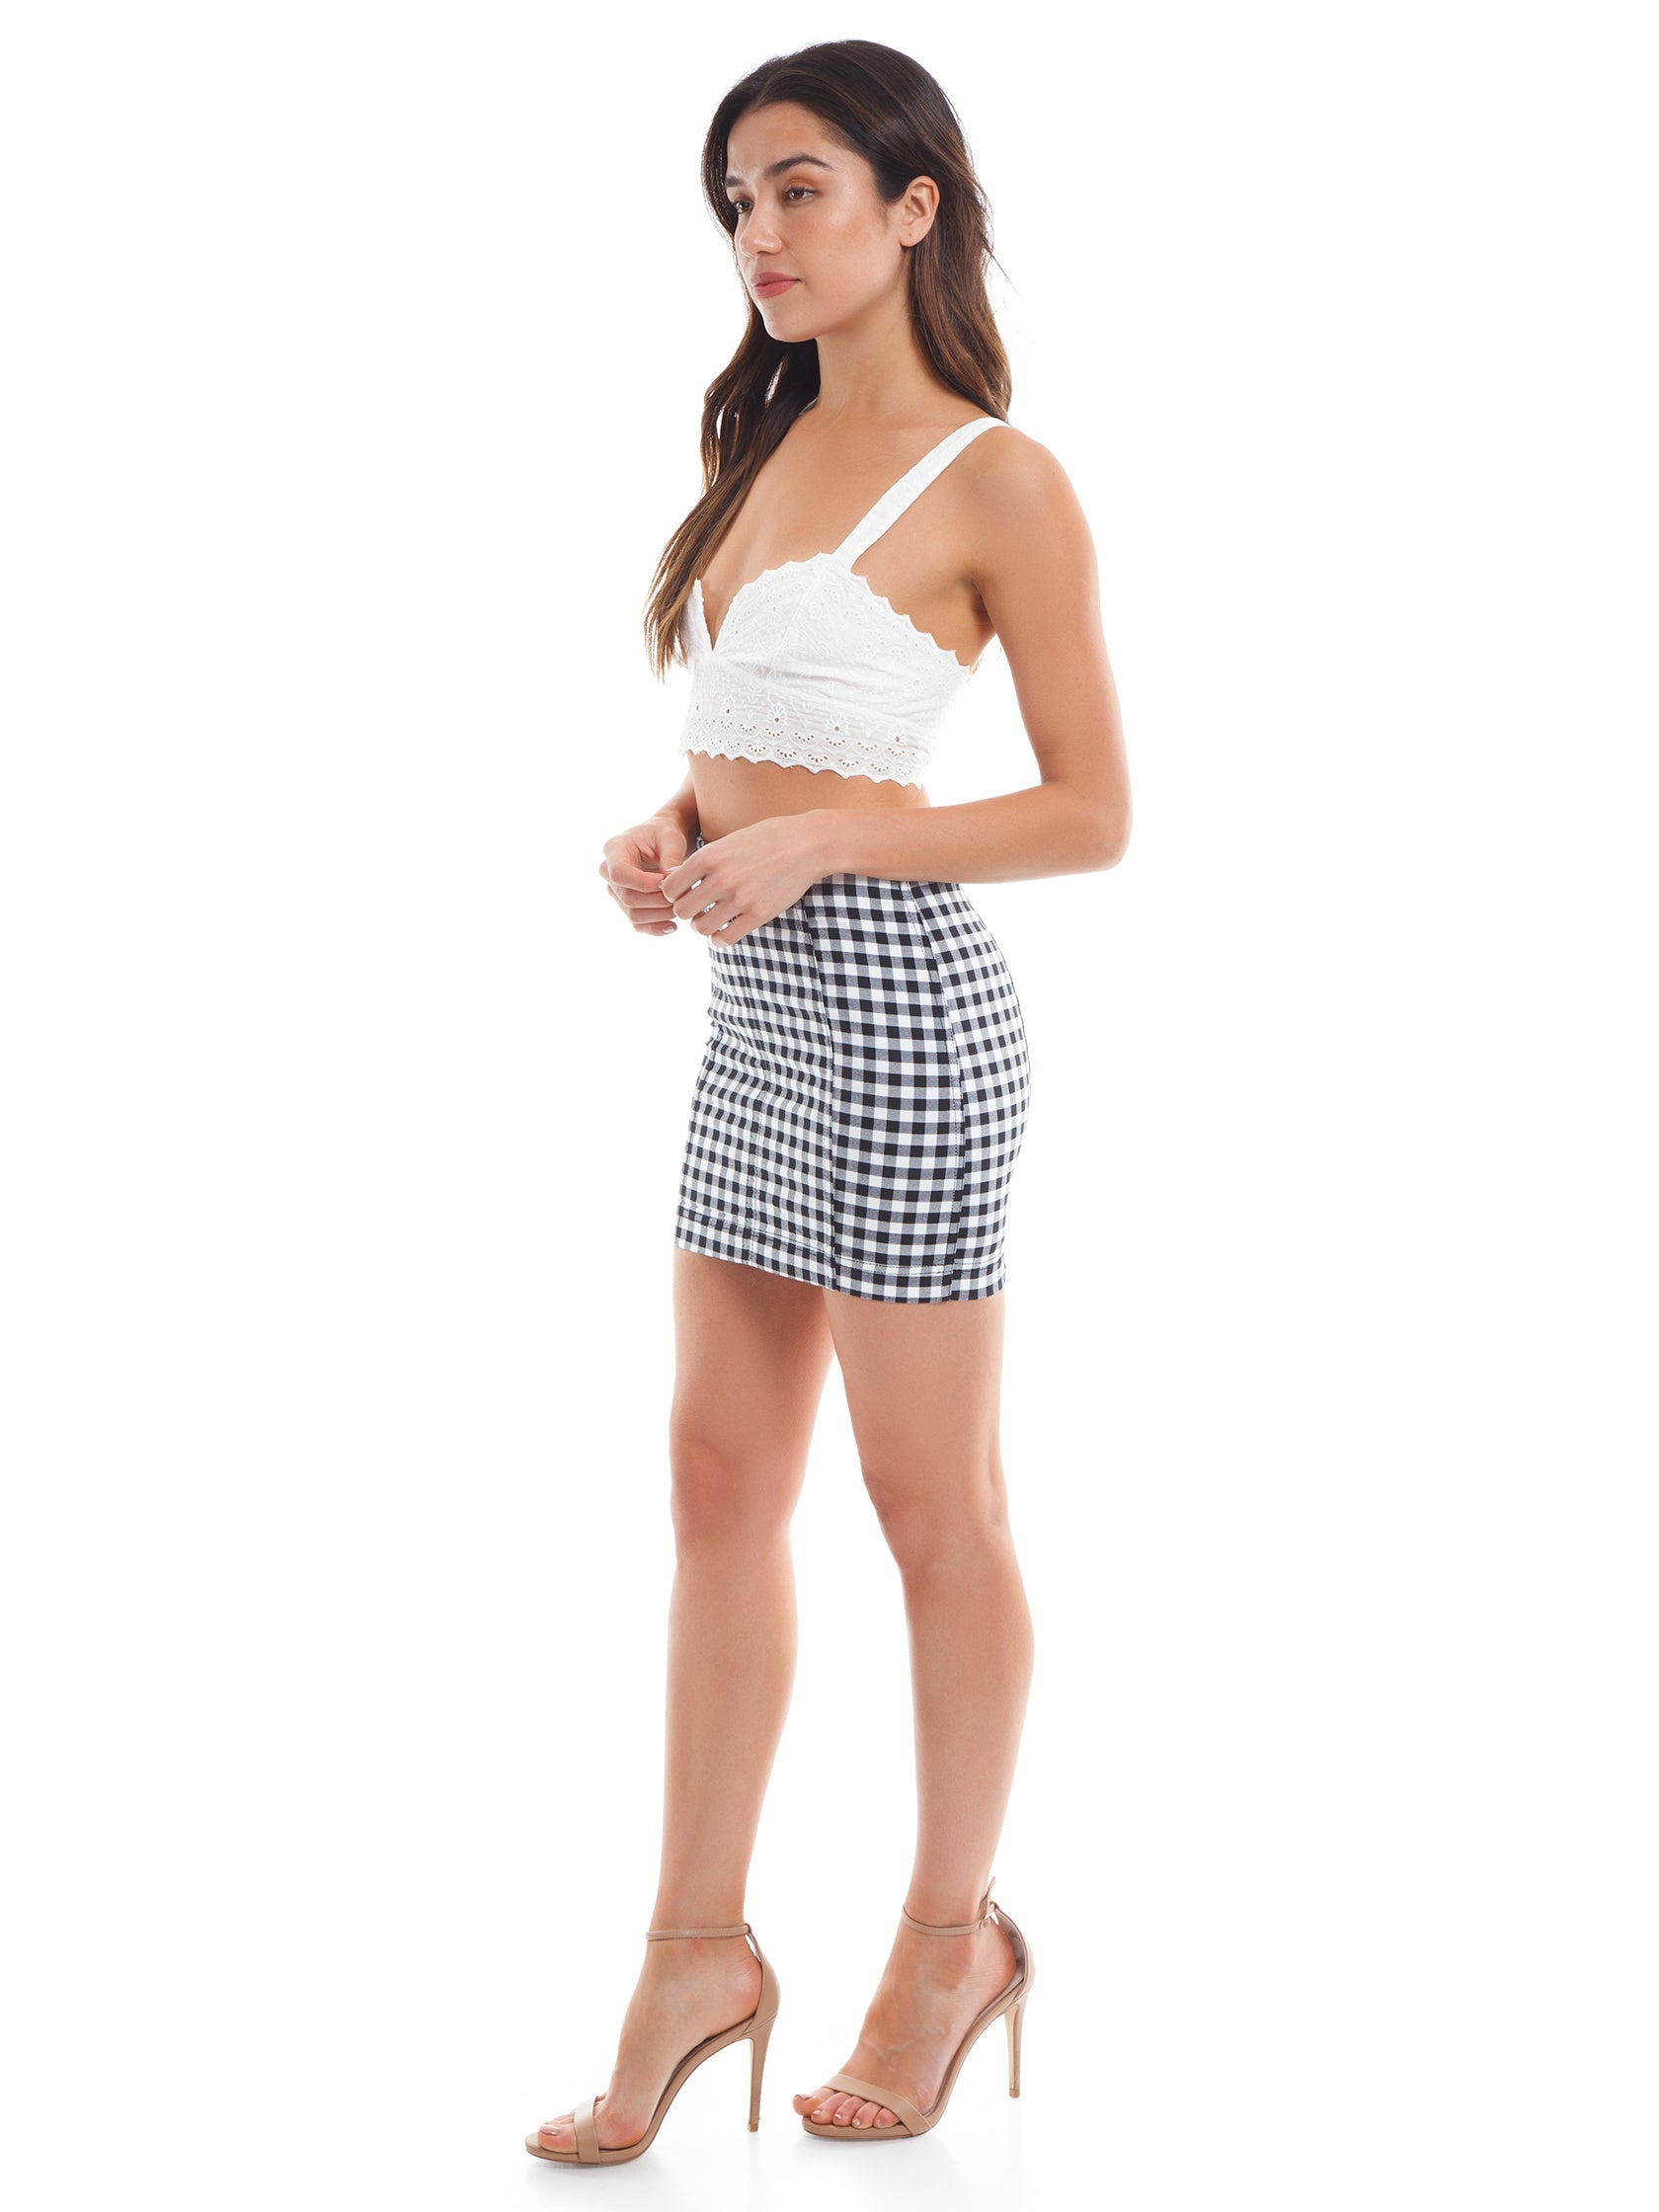 Woman wearing a skirt rental from Free People called Modern Femme Gingham Mini Skirt